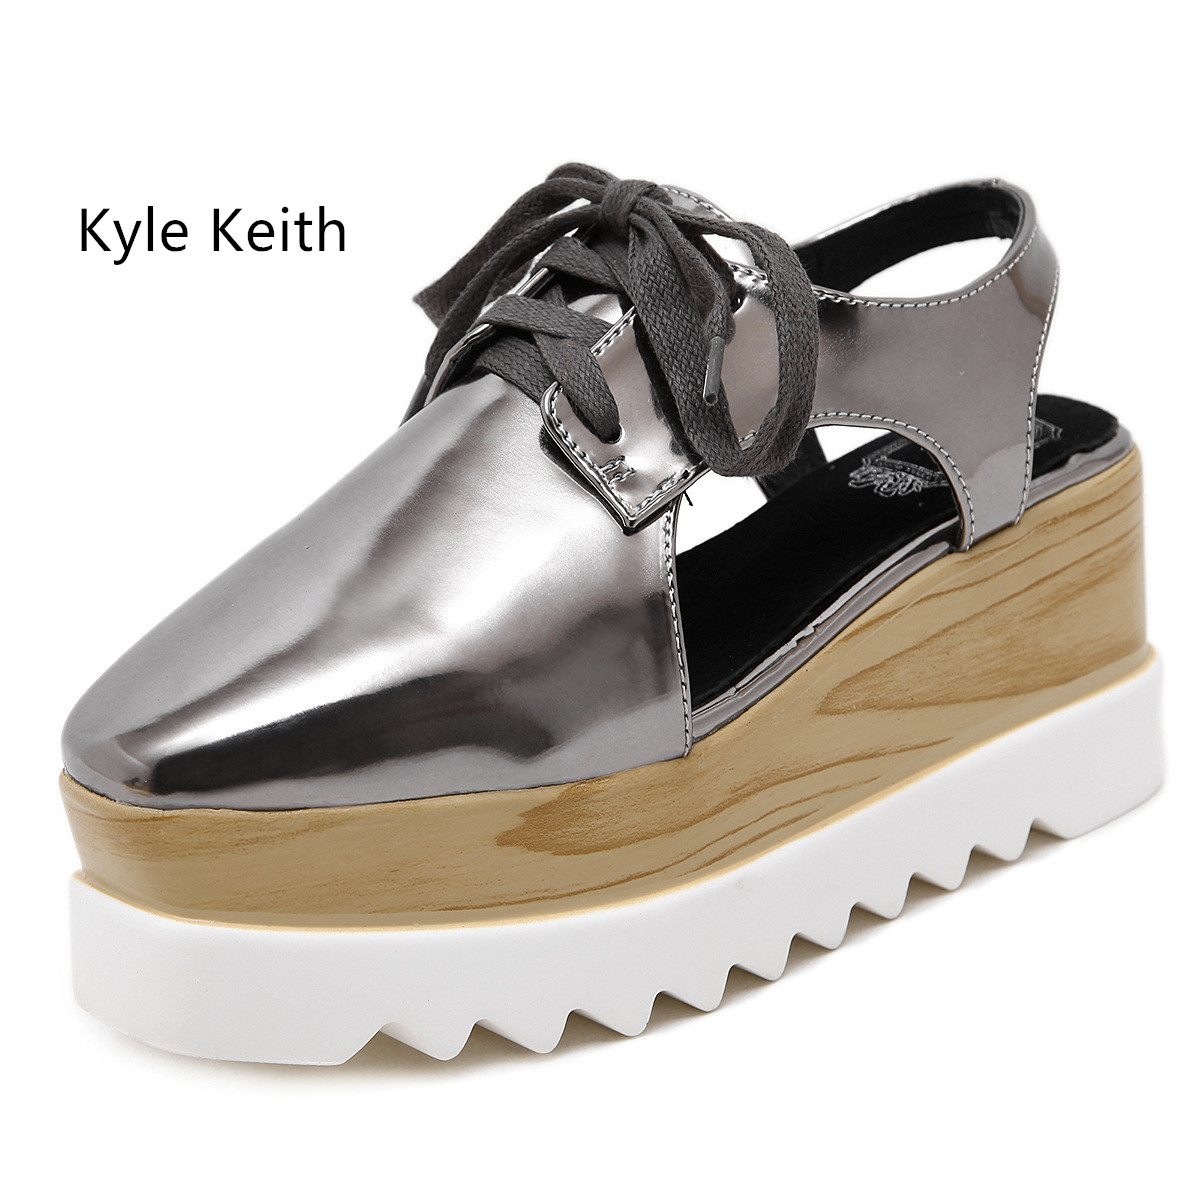 Kyle Keith Spring and Summer Luxury Height Increasing Women Shoes Flat Platform Brand Fashion Womens Flats Shoes flats new women s shoes in spring and summer 2017 will be able to make comfortable and sweet flat footed women s shoes